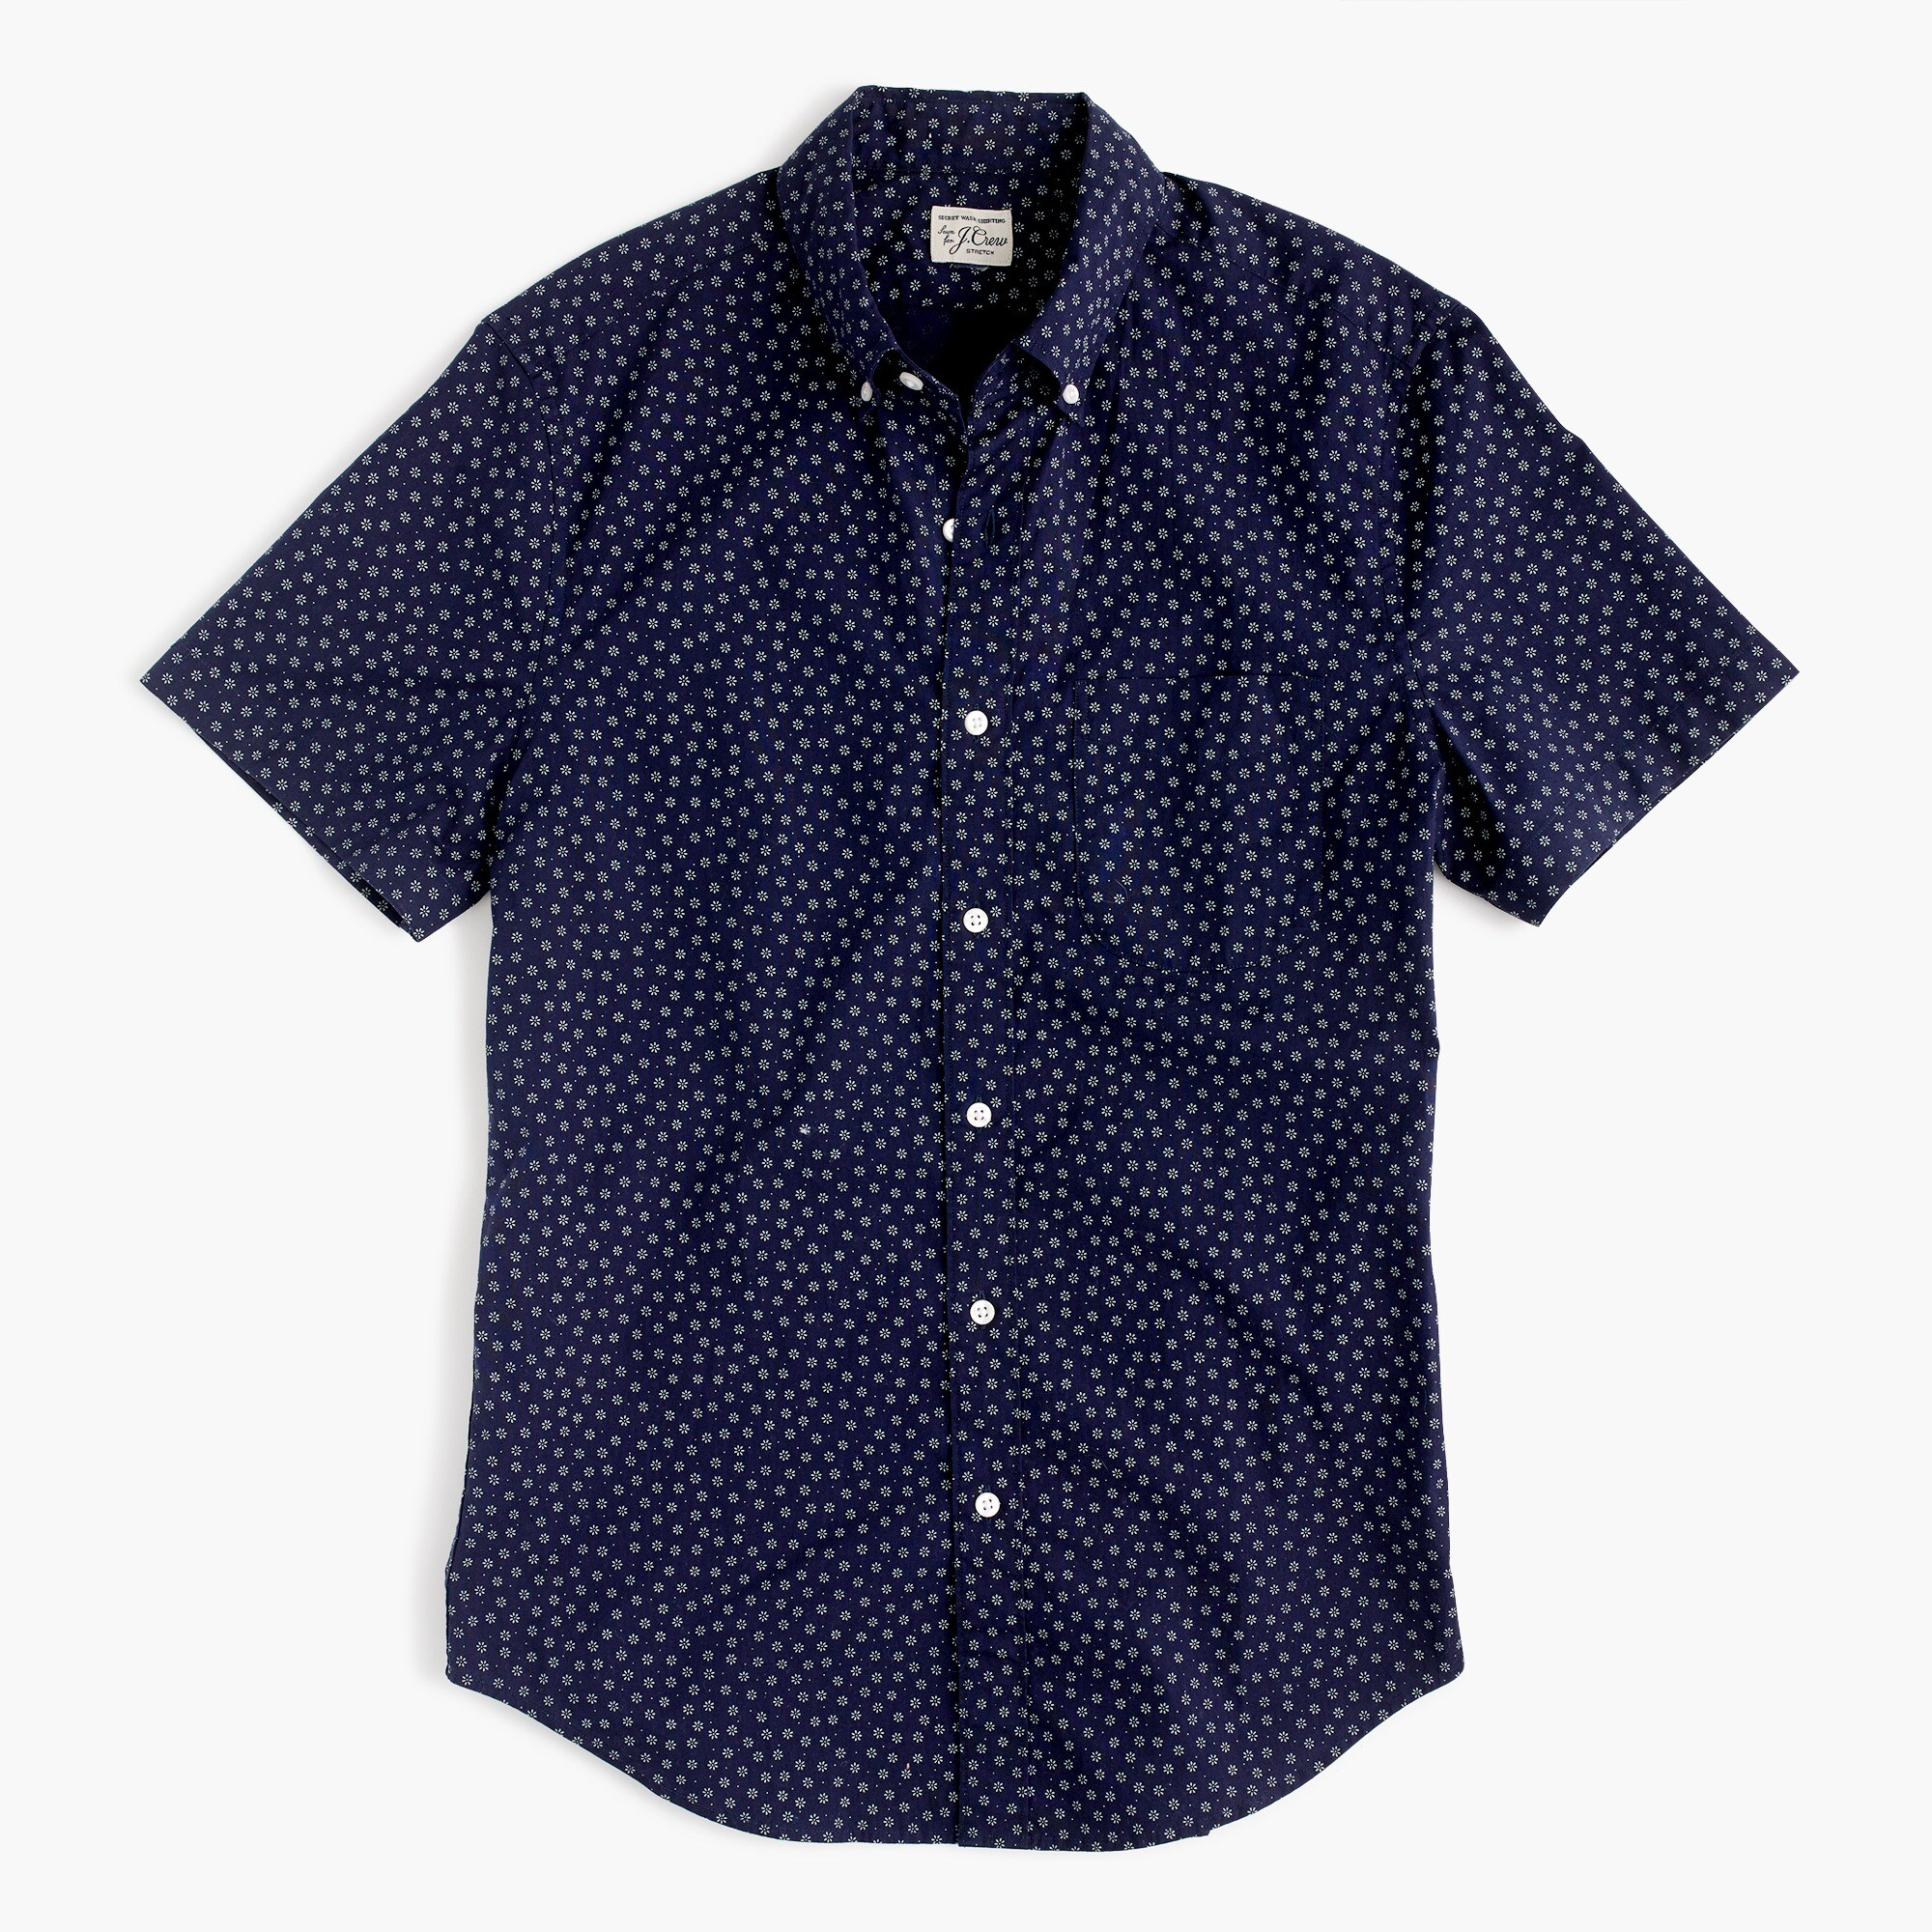 mens Slim stretch short-sleeve Secret Wash shirt in daisy print